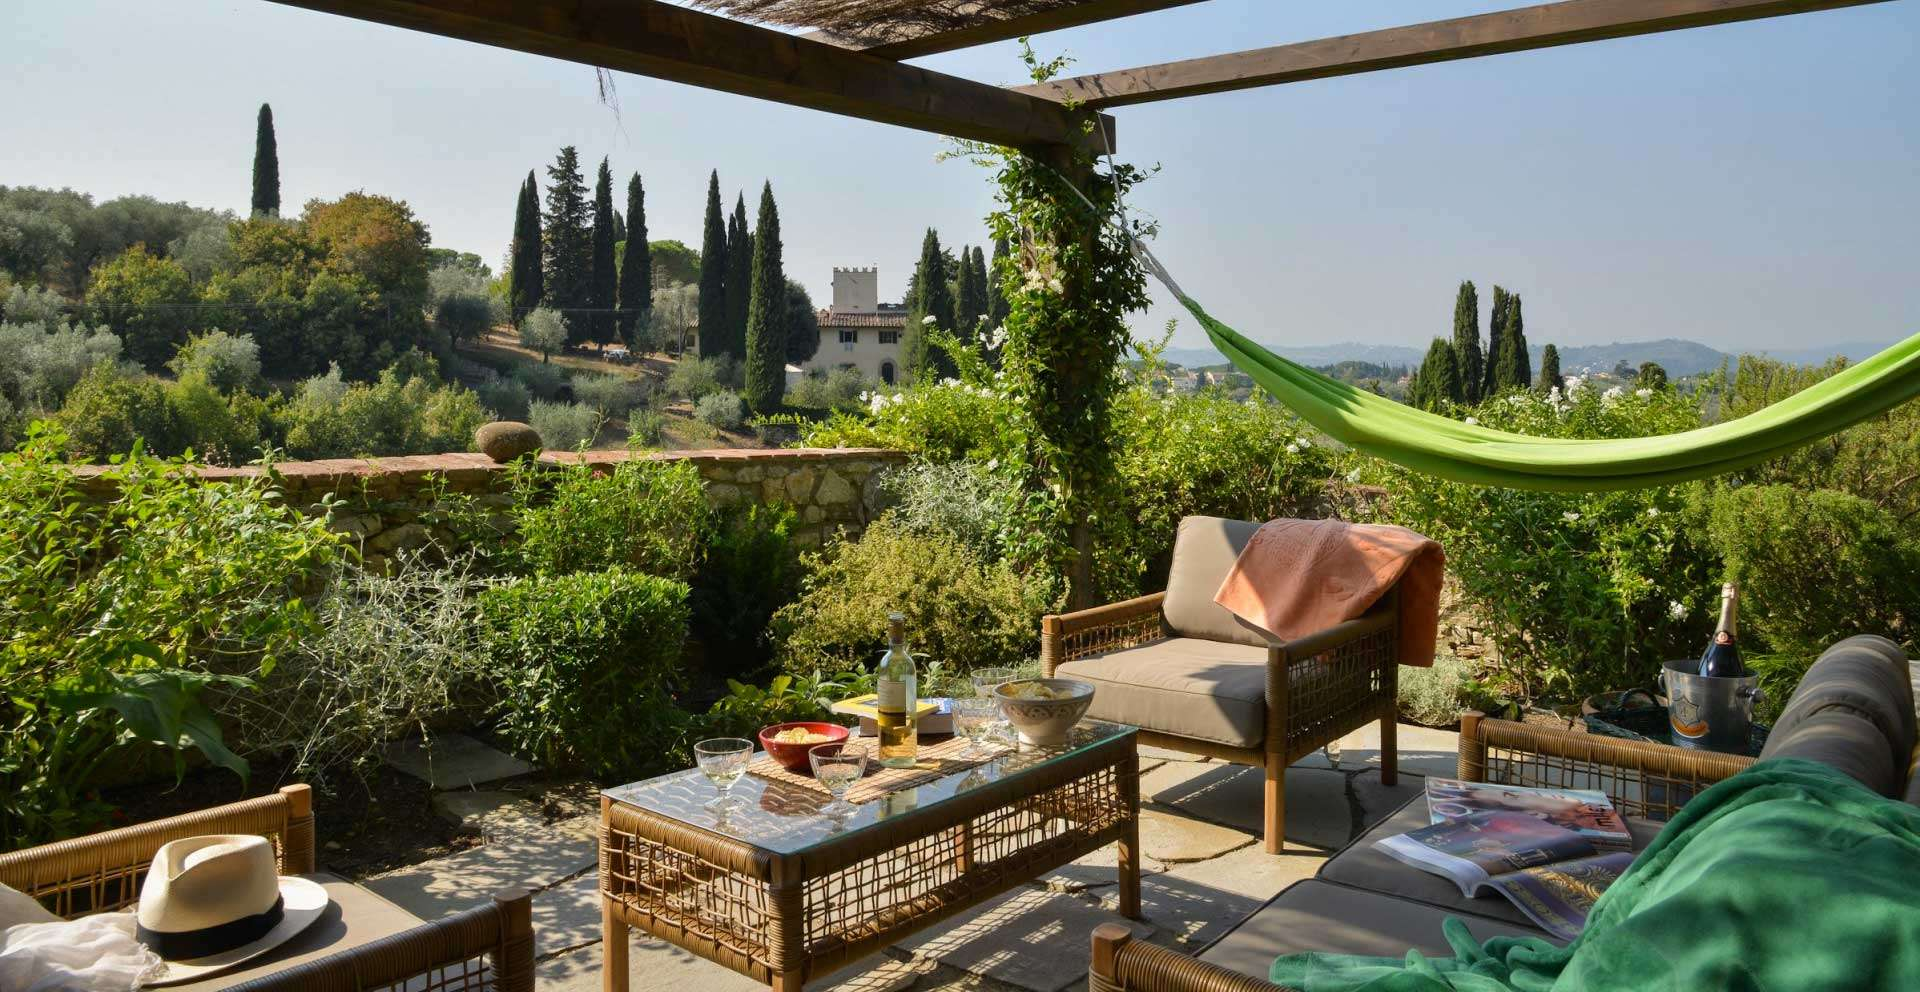 Il Nido del Picchio is part of a beautiful, privately owned 15th century hamlet located in the olive clad hills that overlook Florence.